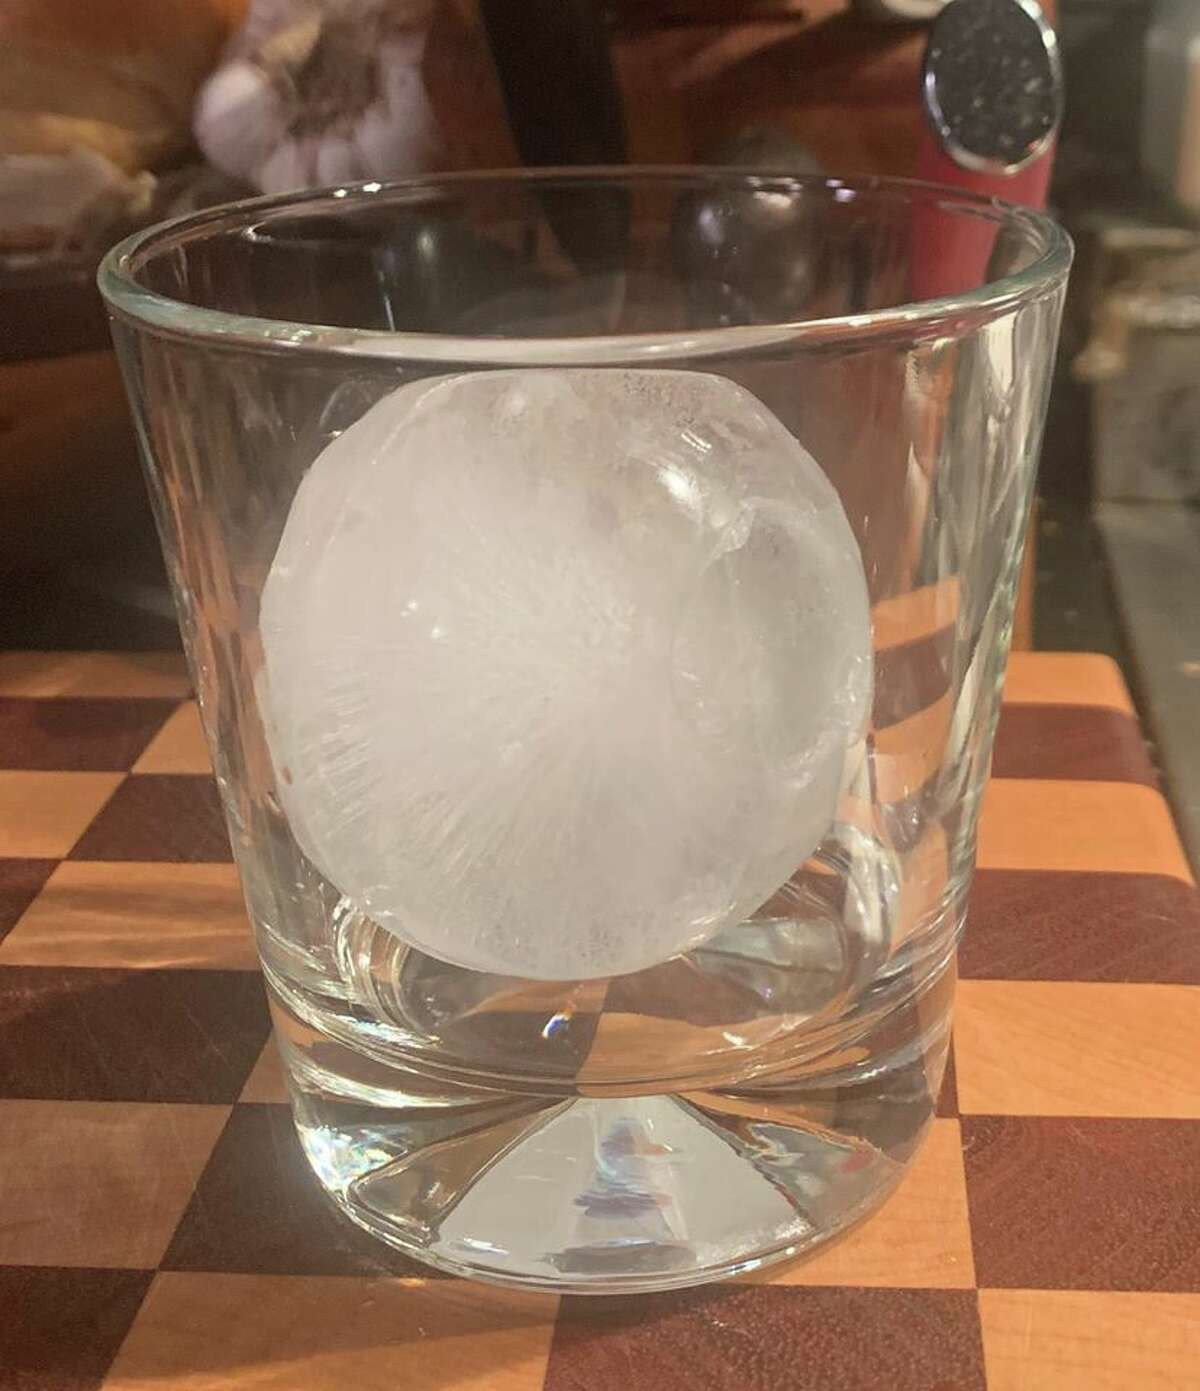 Big, spherical ice cubes: